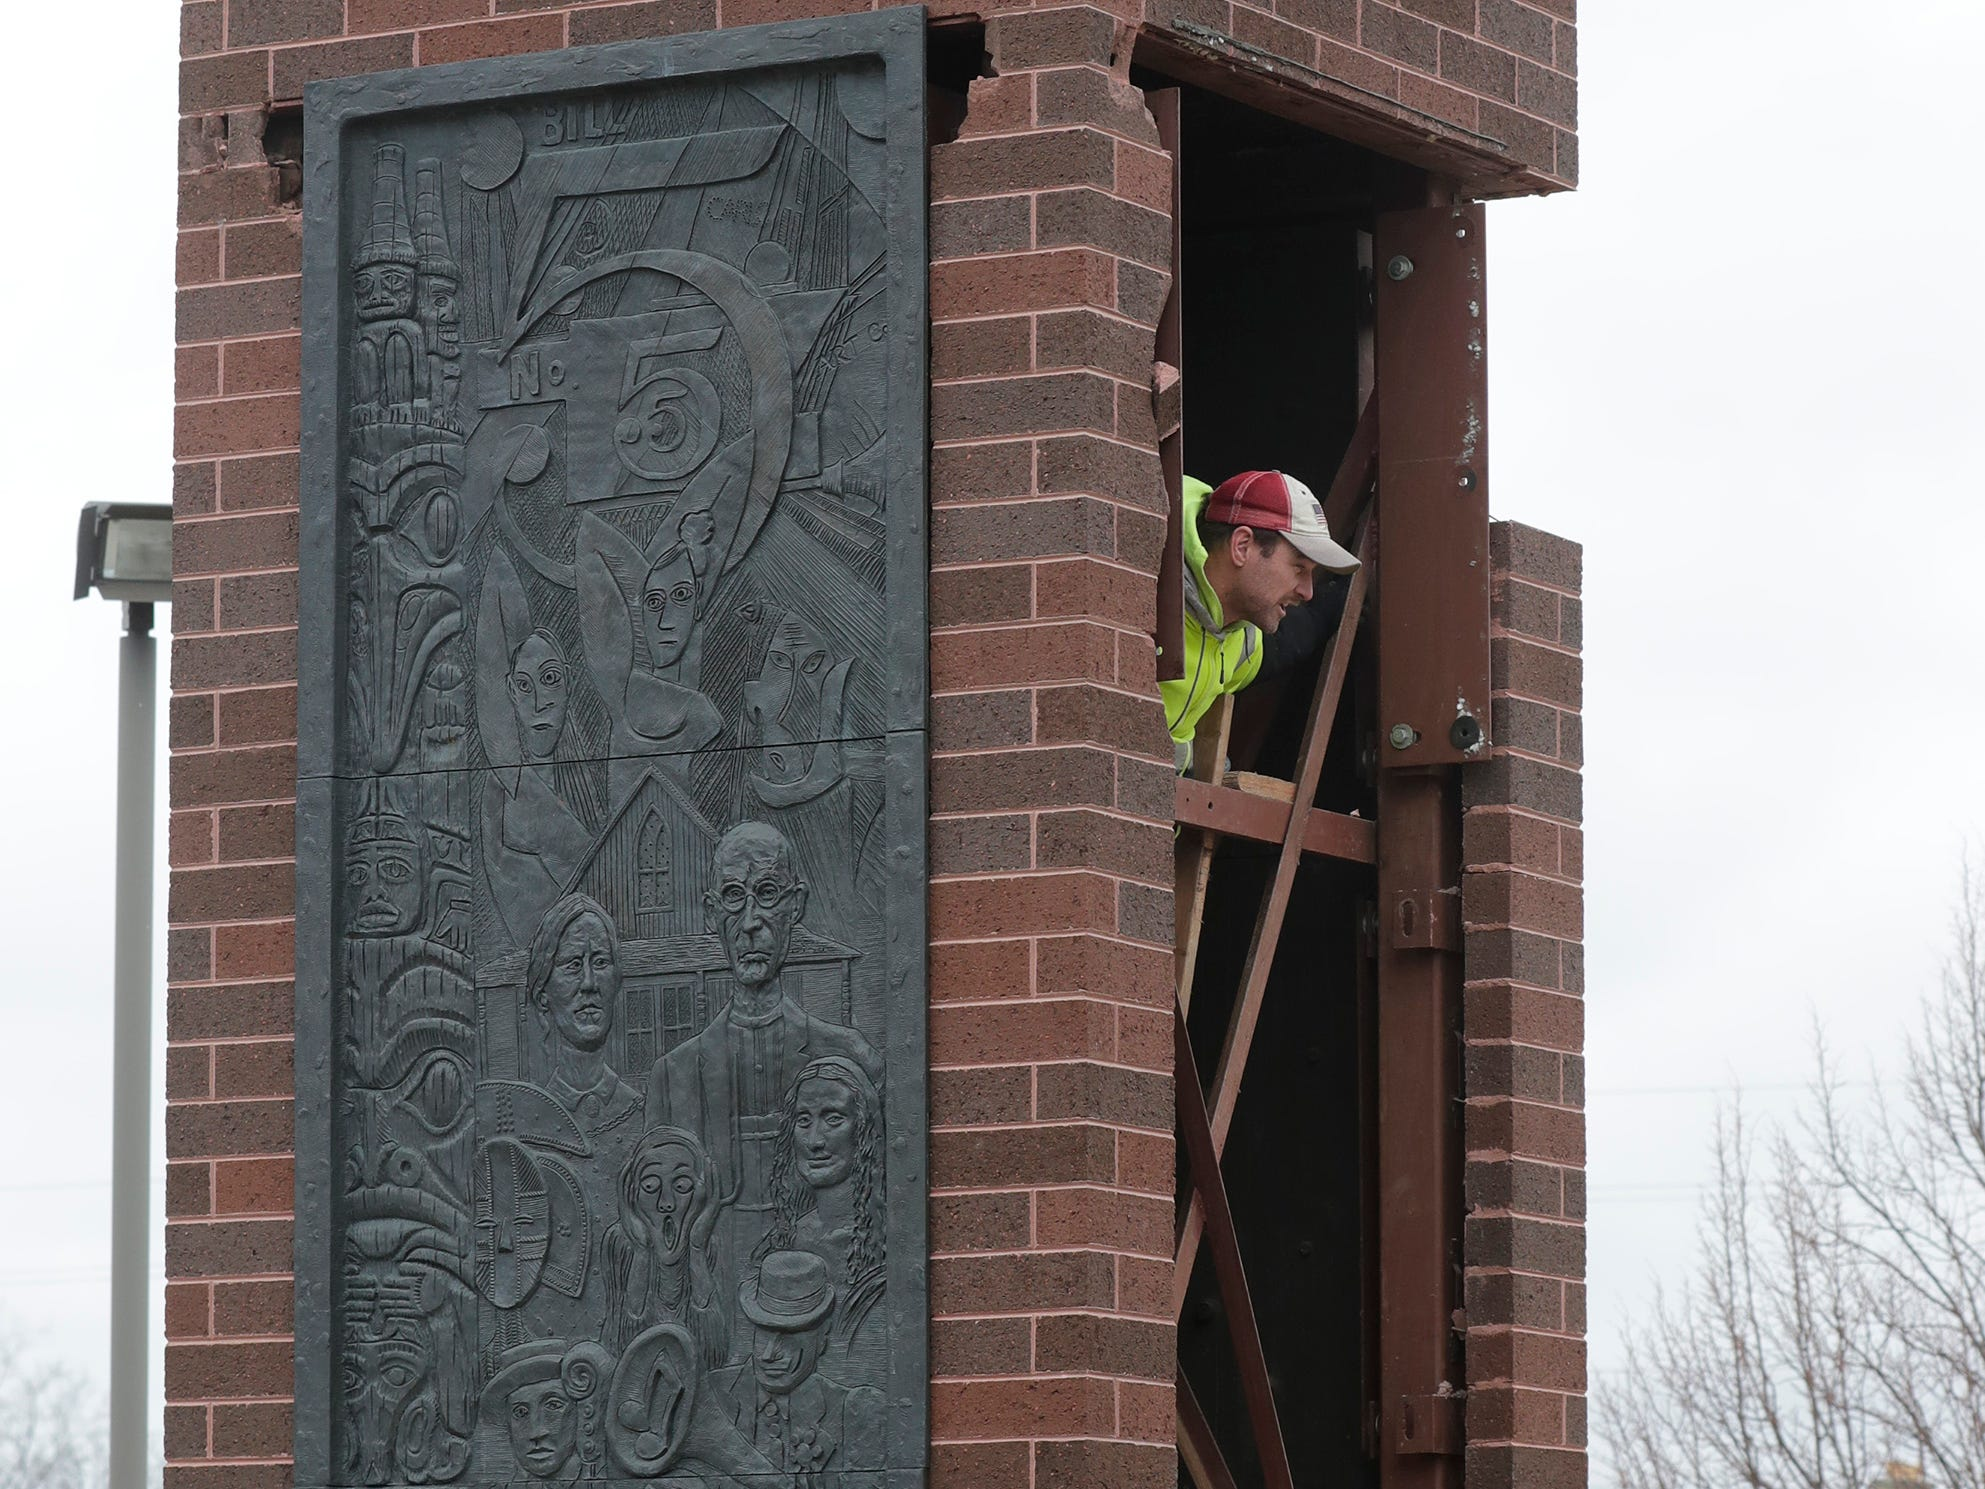 An employee from Koenig Constructions peers out from inside the clock tower at Mead Public Library, Wednesday April 10, 2019, in Sheboygan, Wis. The city is repurposing the cast panels for an 8th Street display as part of a renovations project.